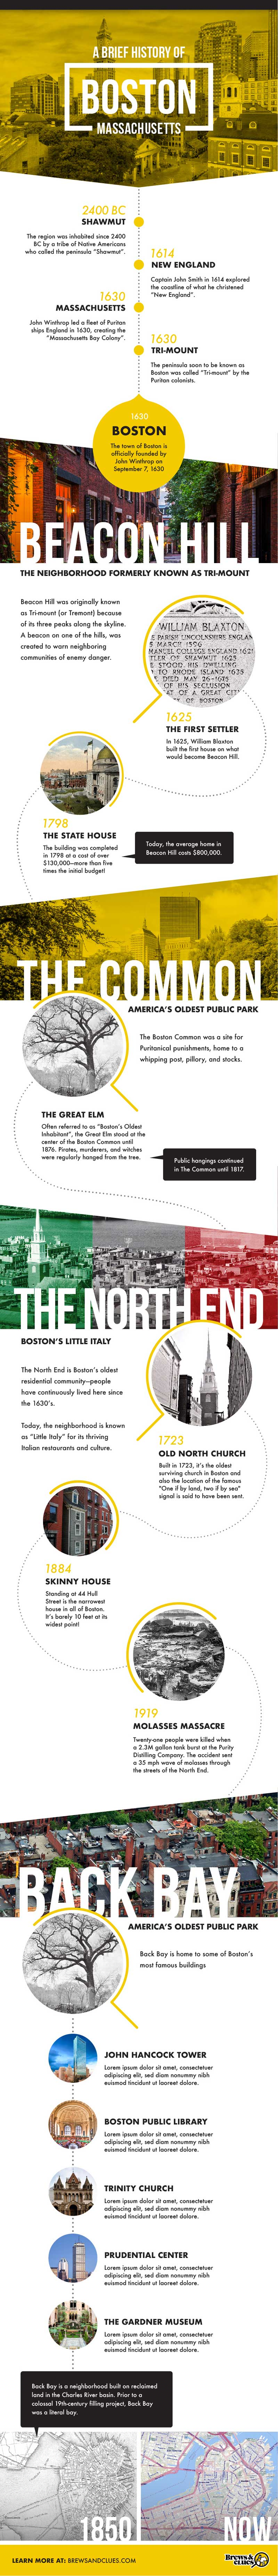 a brief history of boston infographic